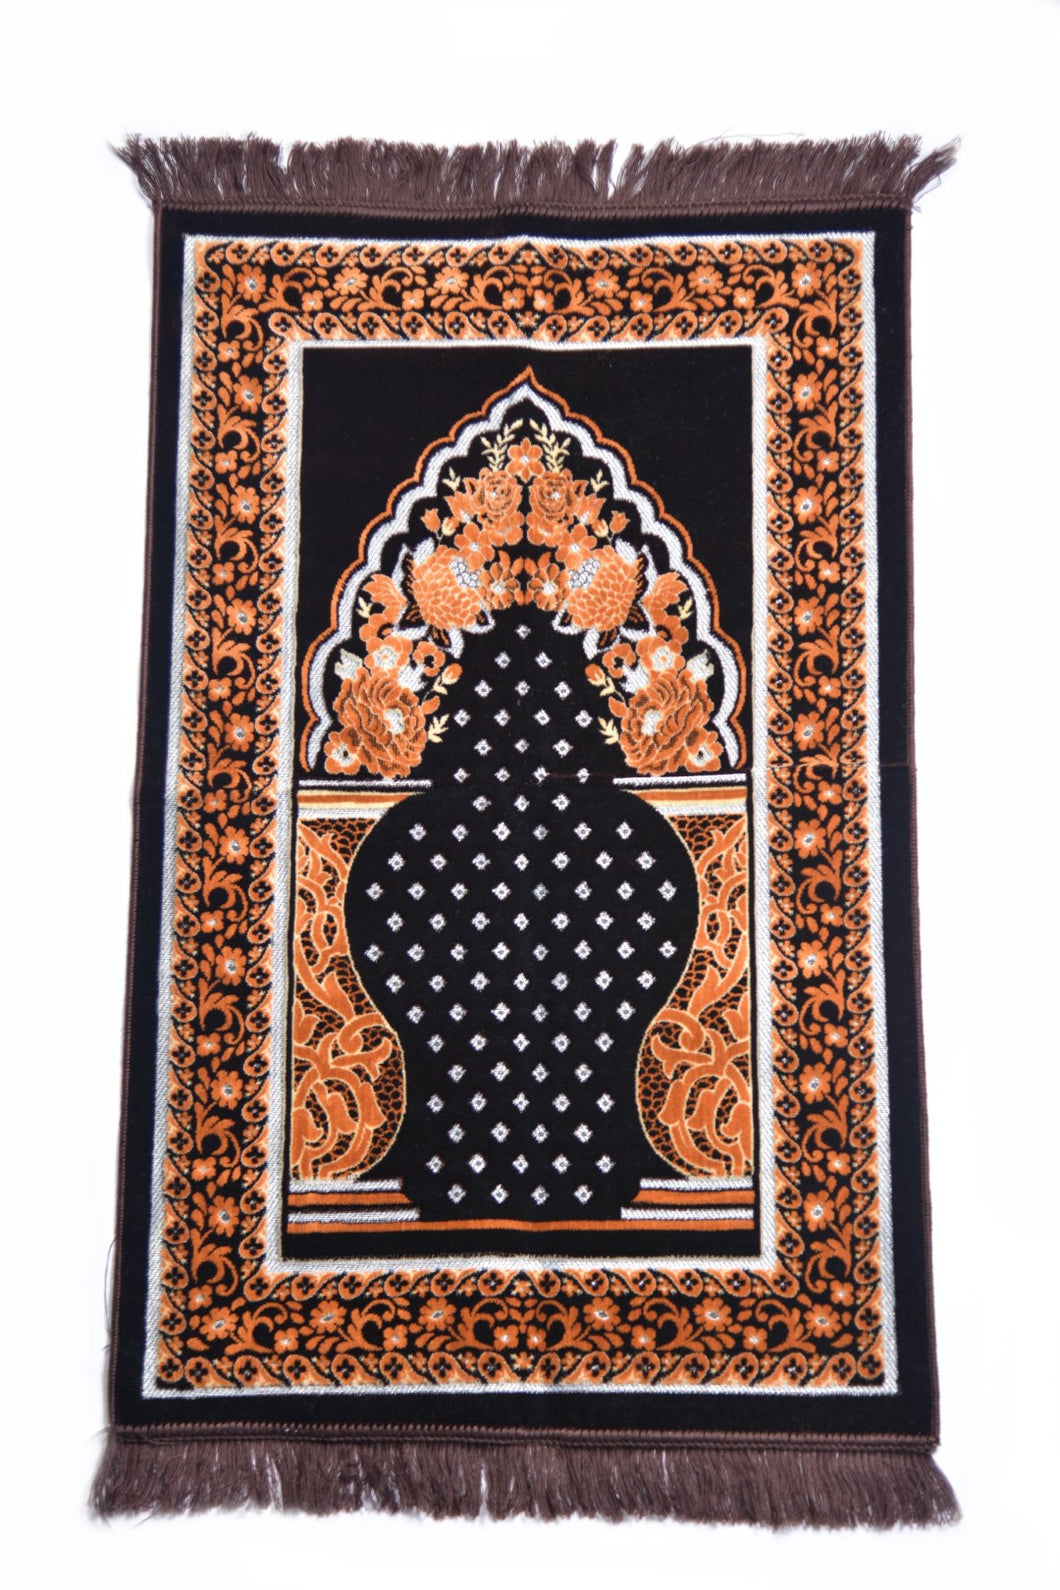 Al Arabia Ultra Lurex Muslim Prayer Rug - Very Thick Plush Velvet - Diamond Design & Fringes On Both Sides - Islamic Prayer Mat - Ideal Gift for Ramadan & Special Occasions, 44 x 27